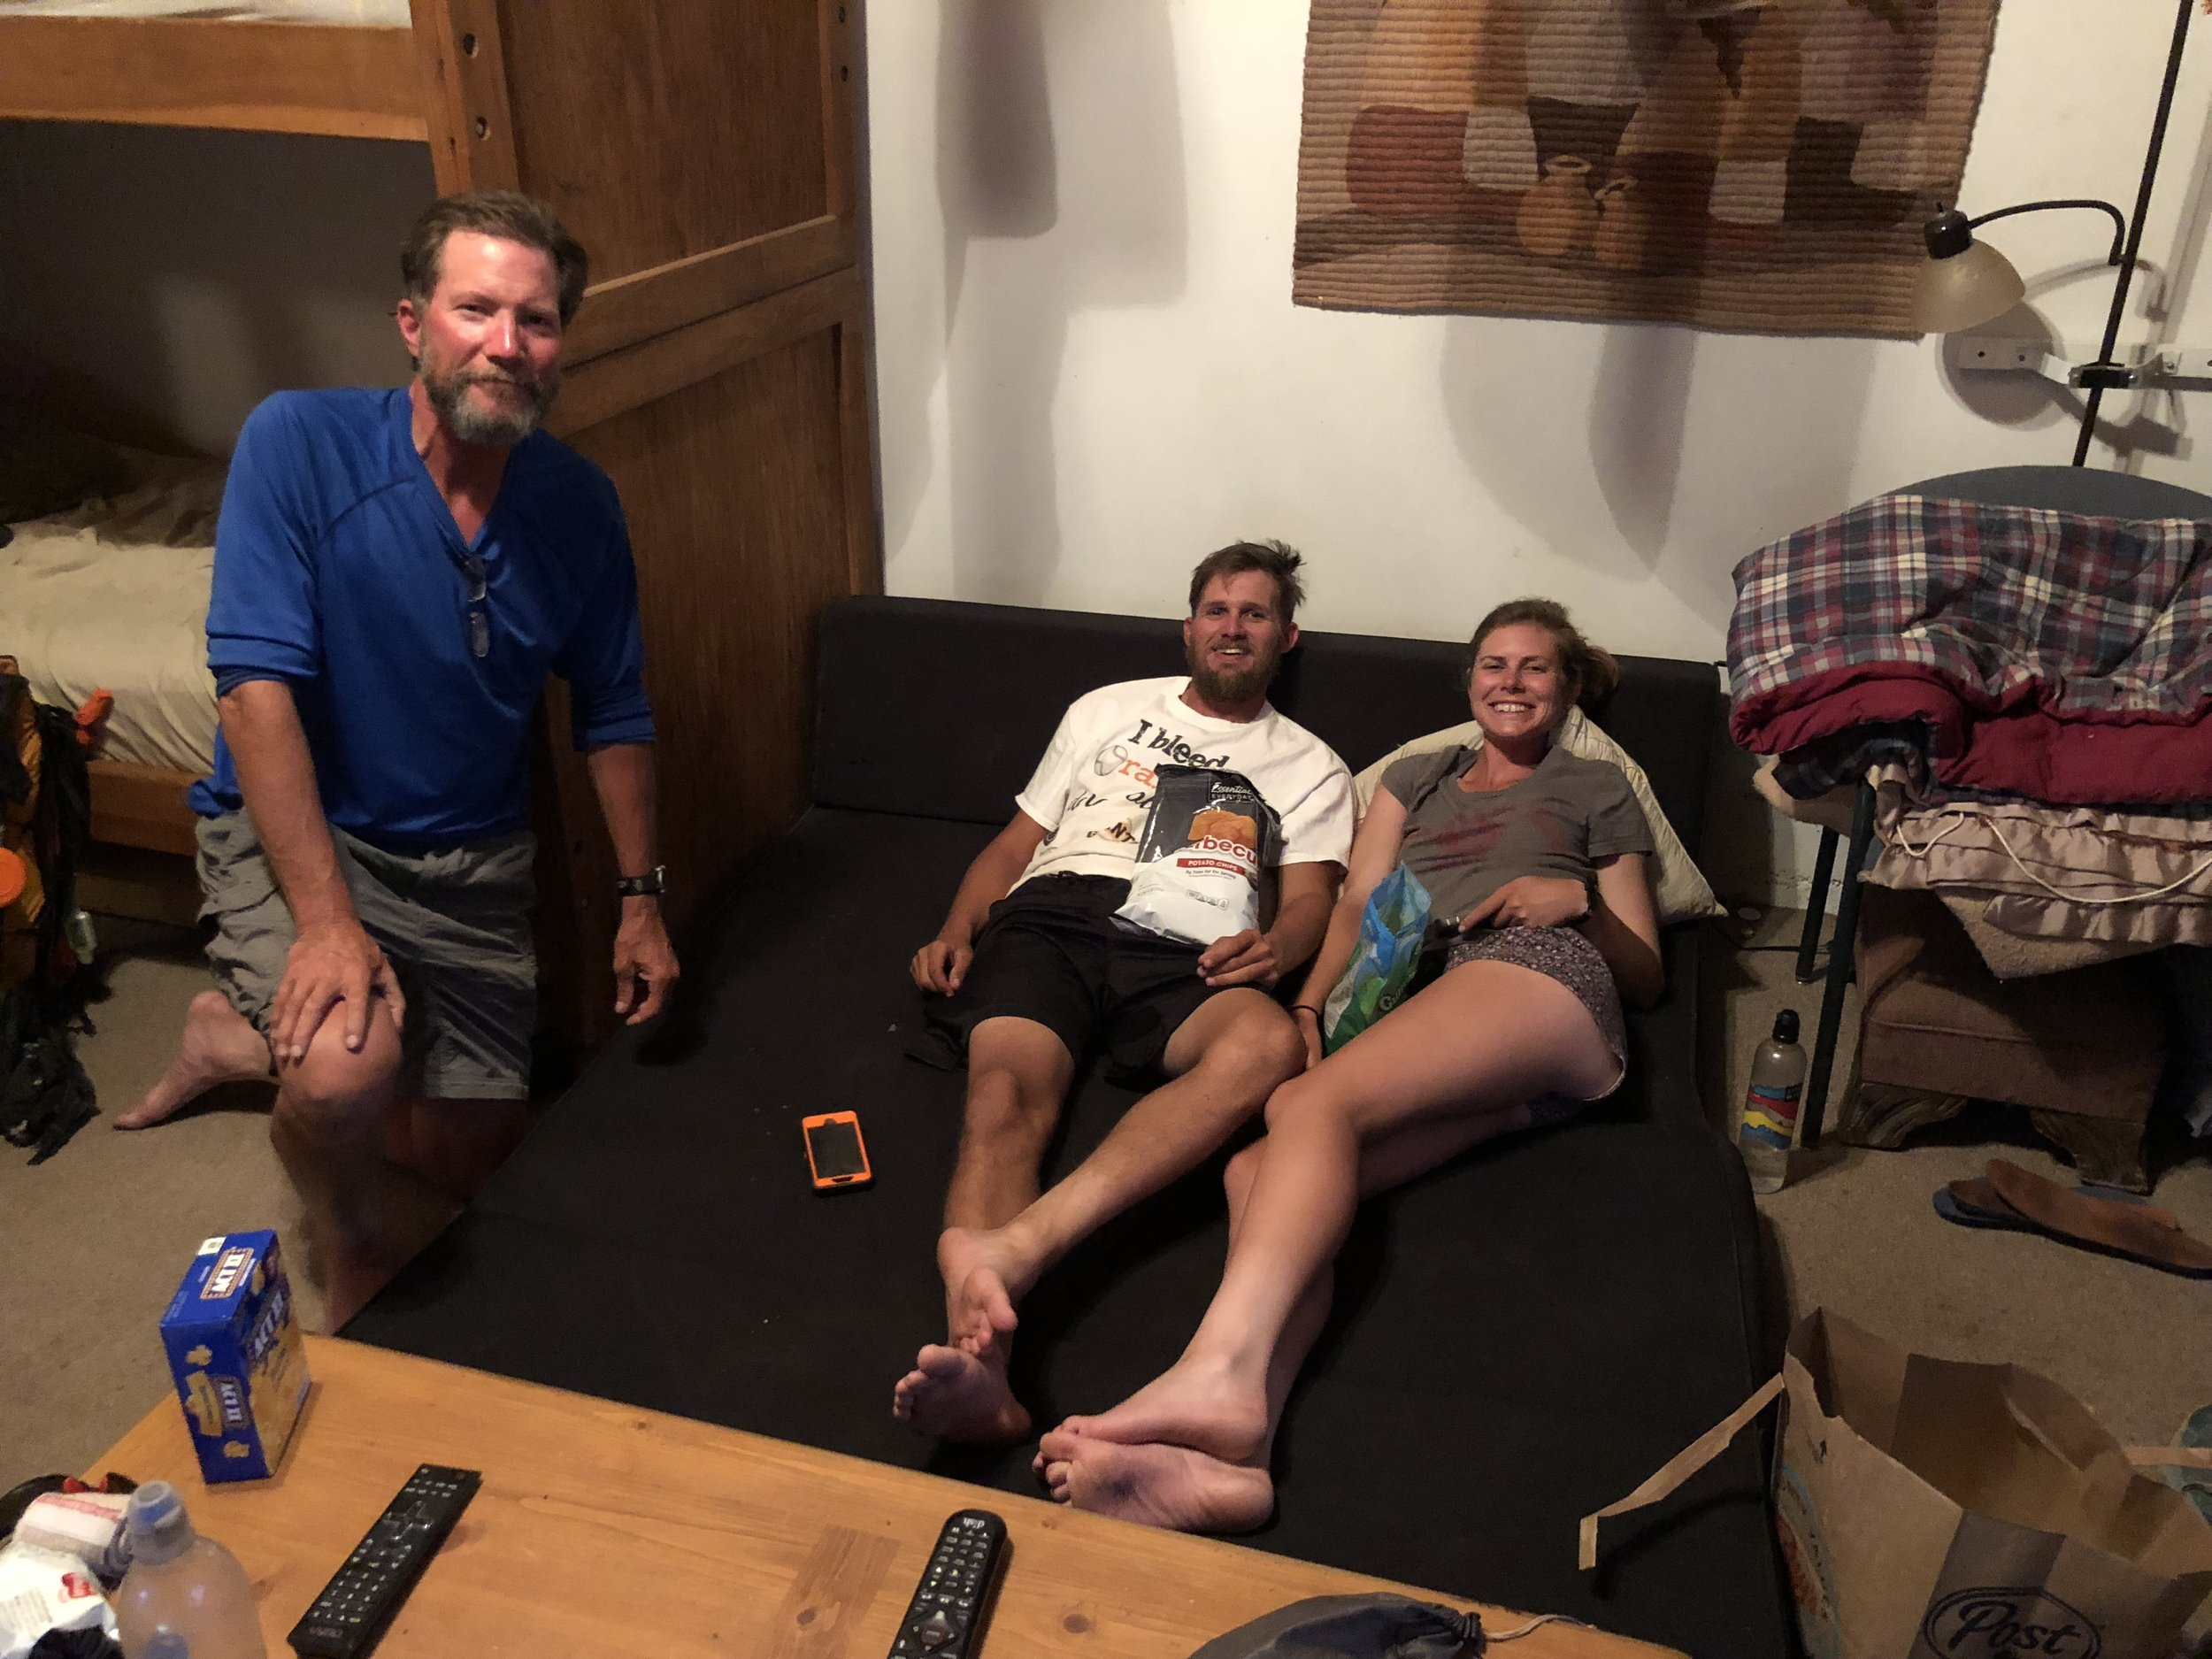 Hikers at hostel in Etna